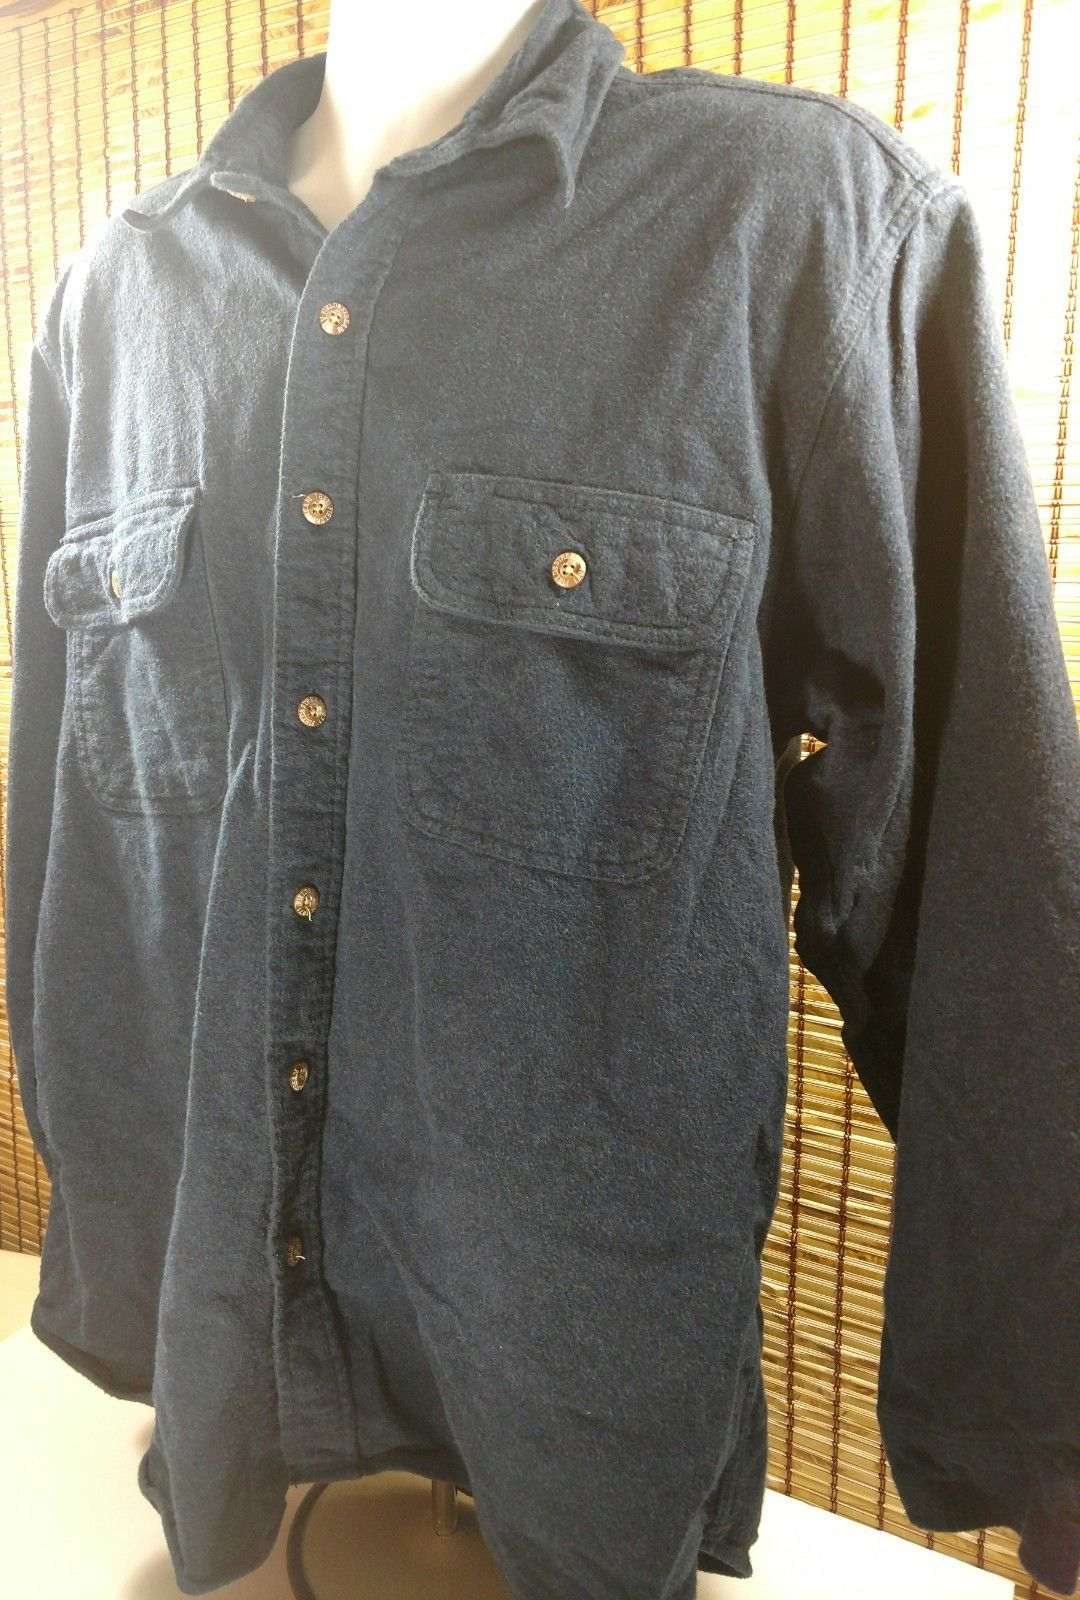 Field & Stream Mens Thick Cotton Shirt Full Button Front Size Large LG L Blue